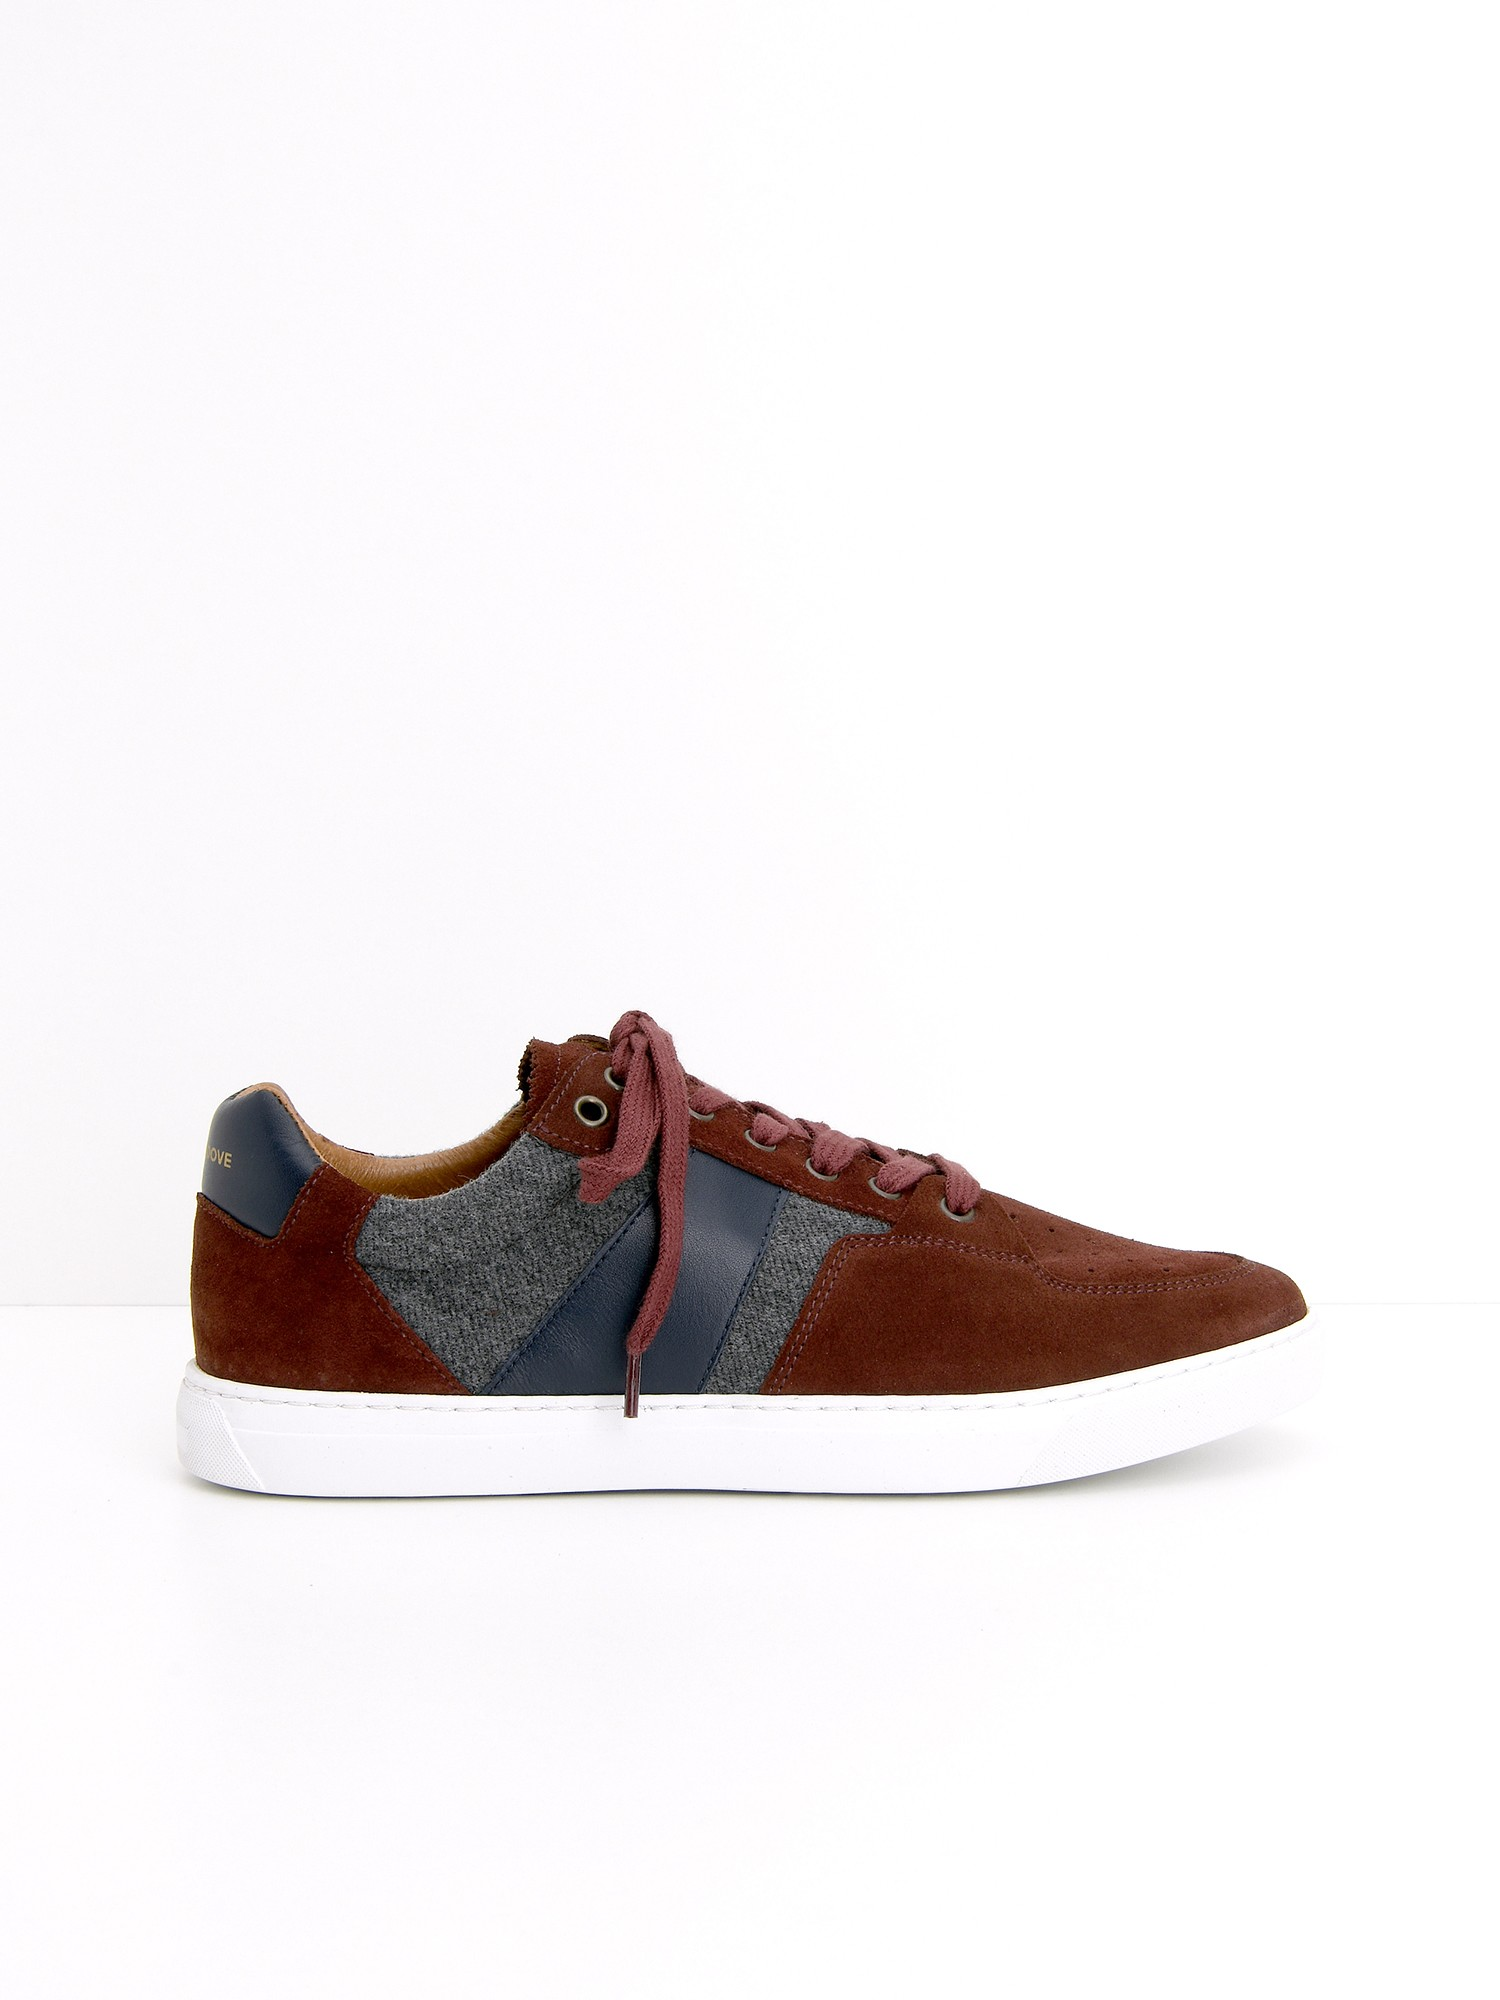 schmoove.fr CUP TENNIS - SUEDE/FLANNEL - ROUILLE/GREY